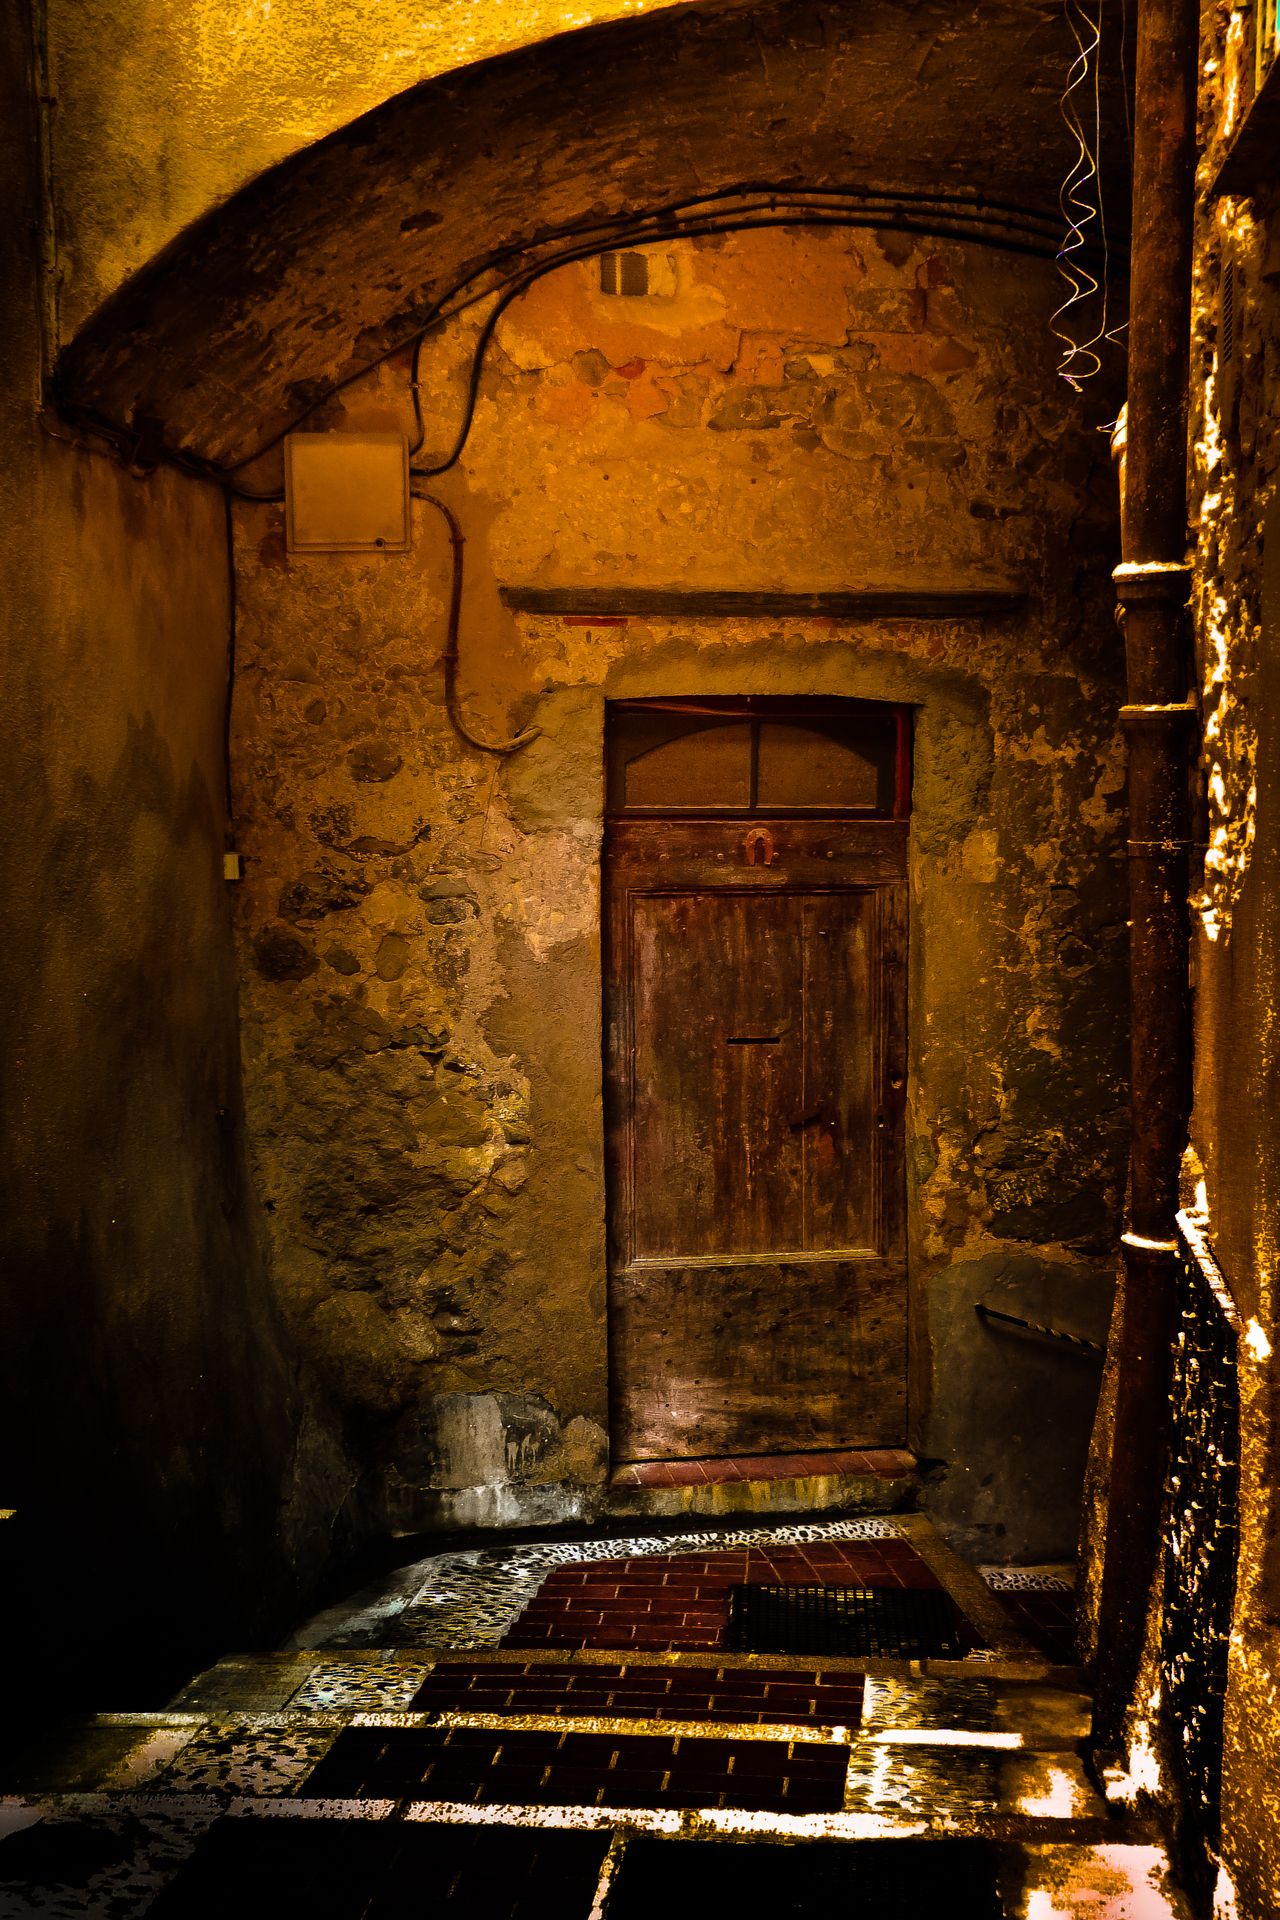 A-closed-door-by-Rucsandra-Calin-Downloaded-from-500px.jpg